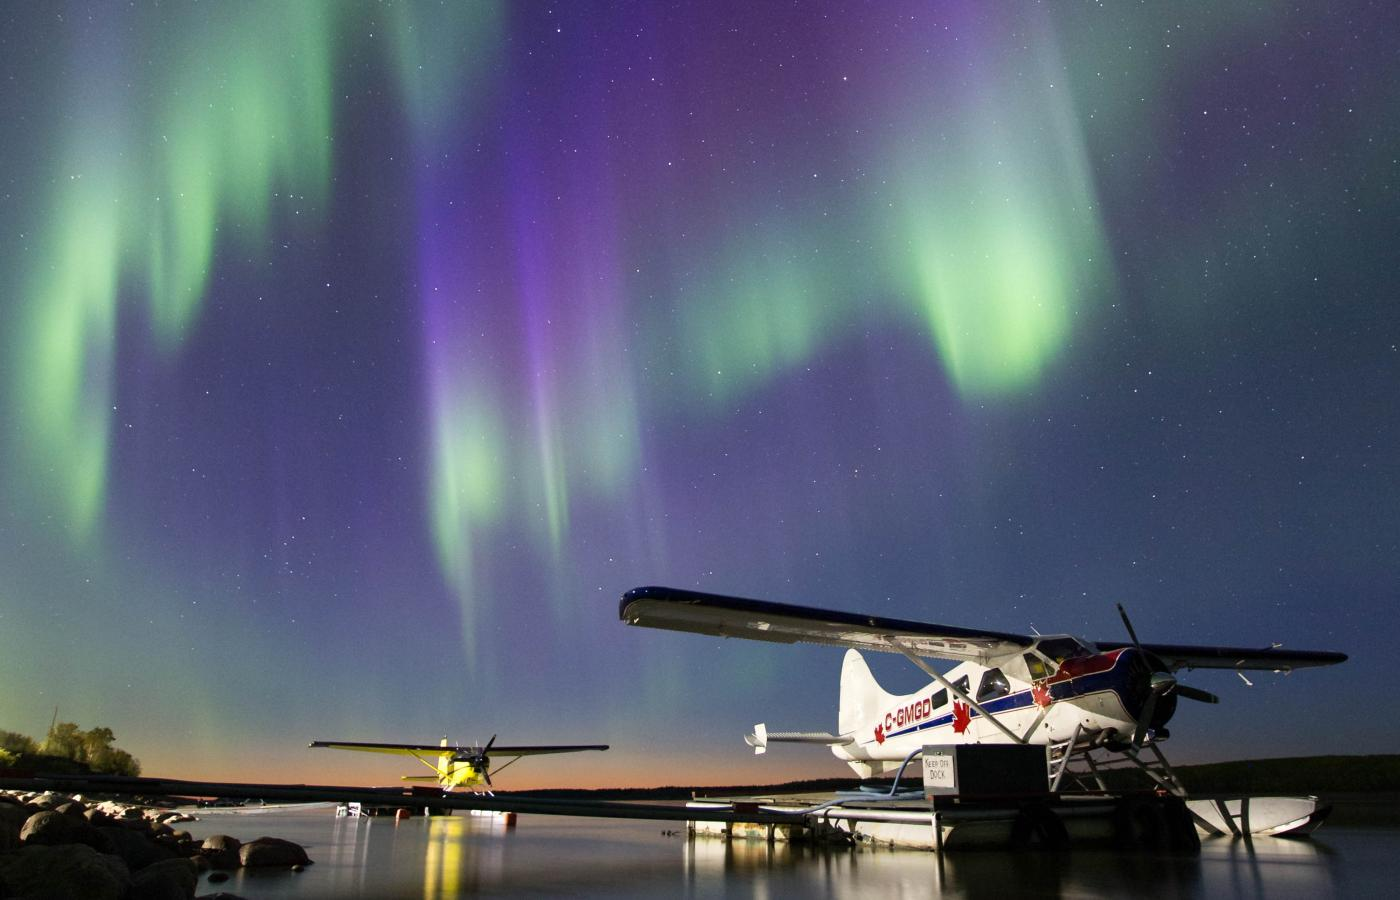 Curtains of Northern Lights blaze out in the sky over a floatplane docked on a river in the NWT